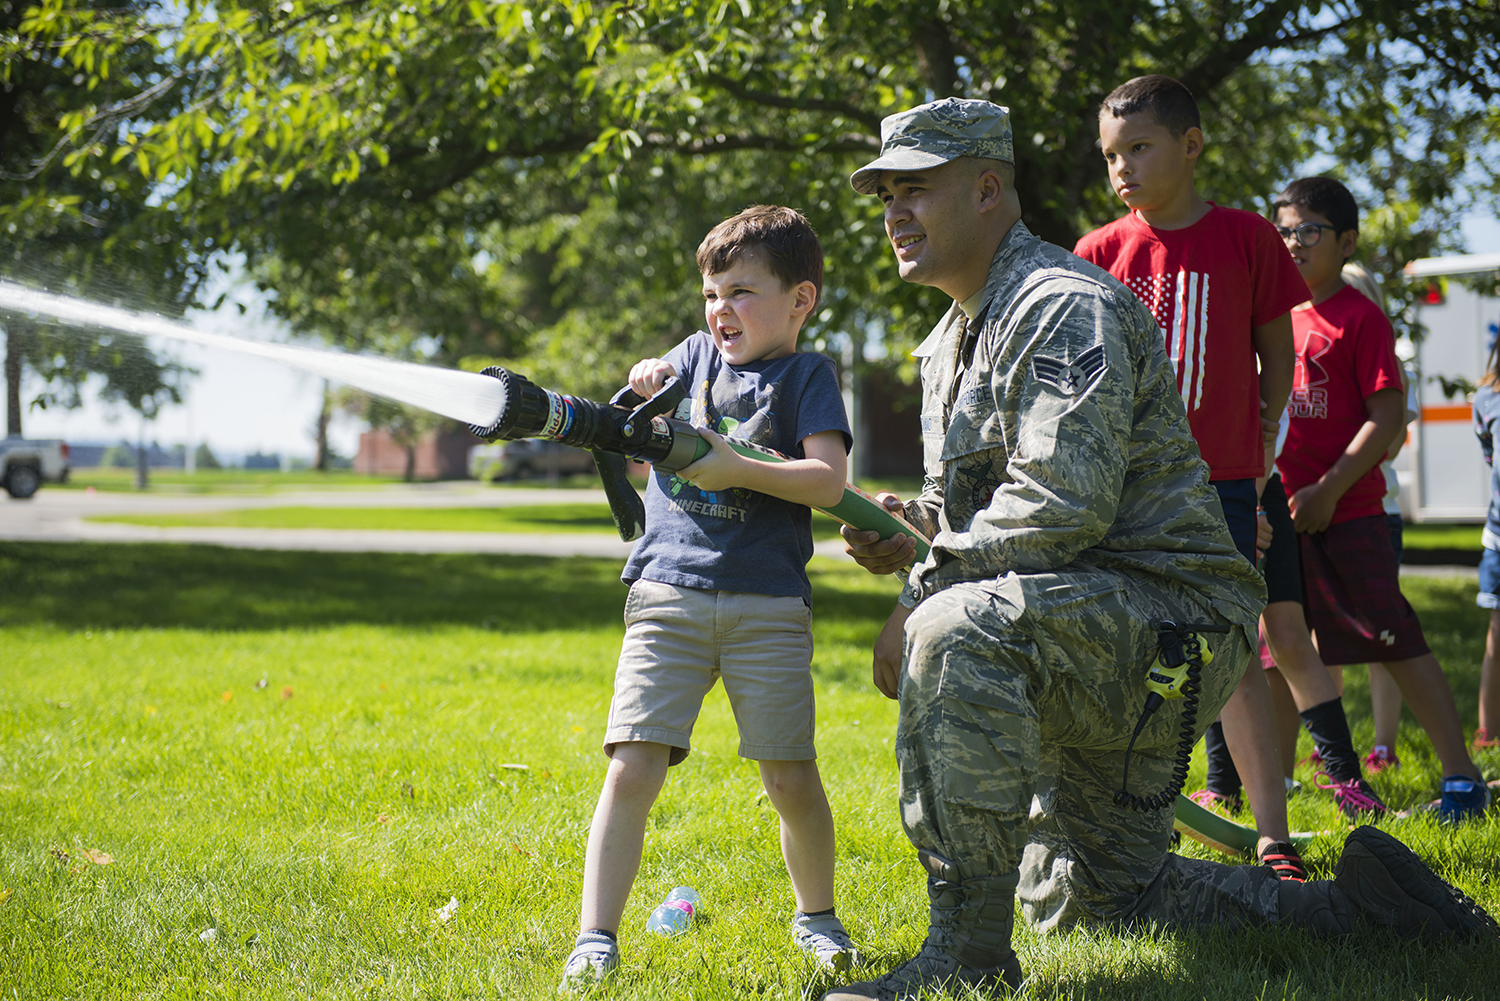 Senior Airman Isaiah Raiano helps a child operate a fire hose during the Summer Youth Fair at Fairchild Air Force Base, Wash., July 25, 2019. (Airman 1st Class Lawrence Sena/Air Force)